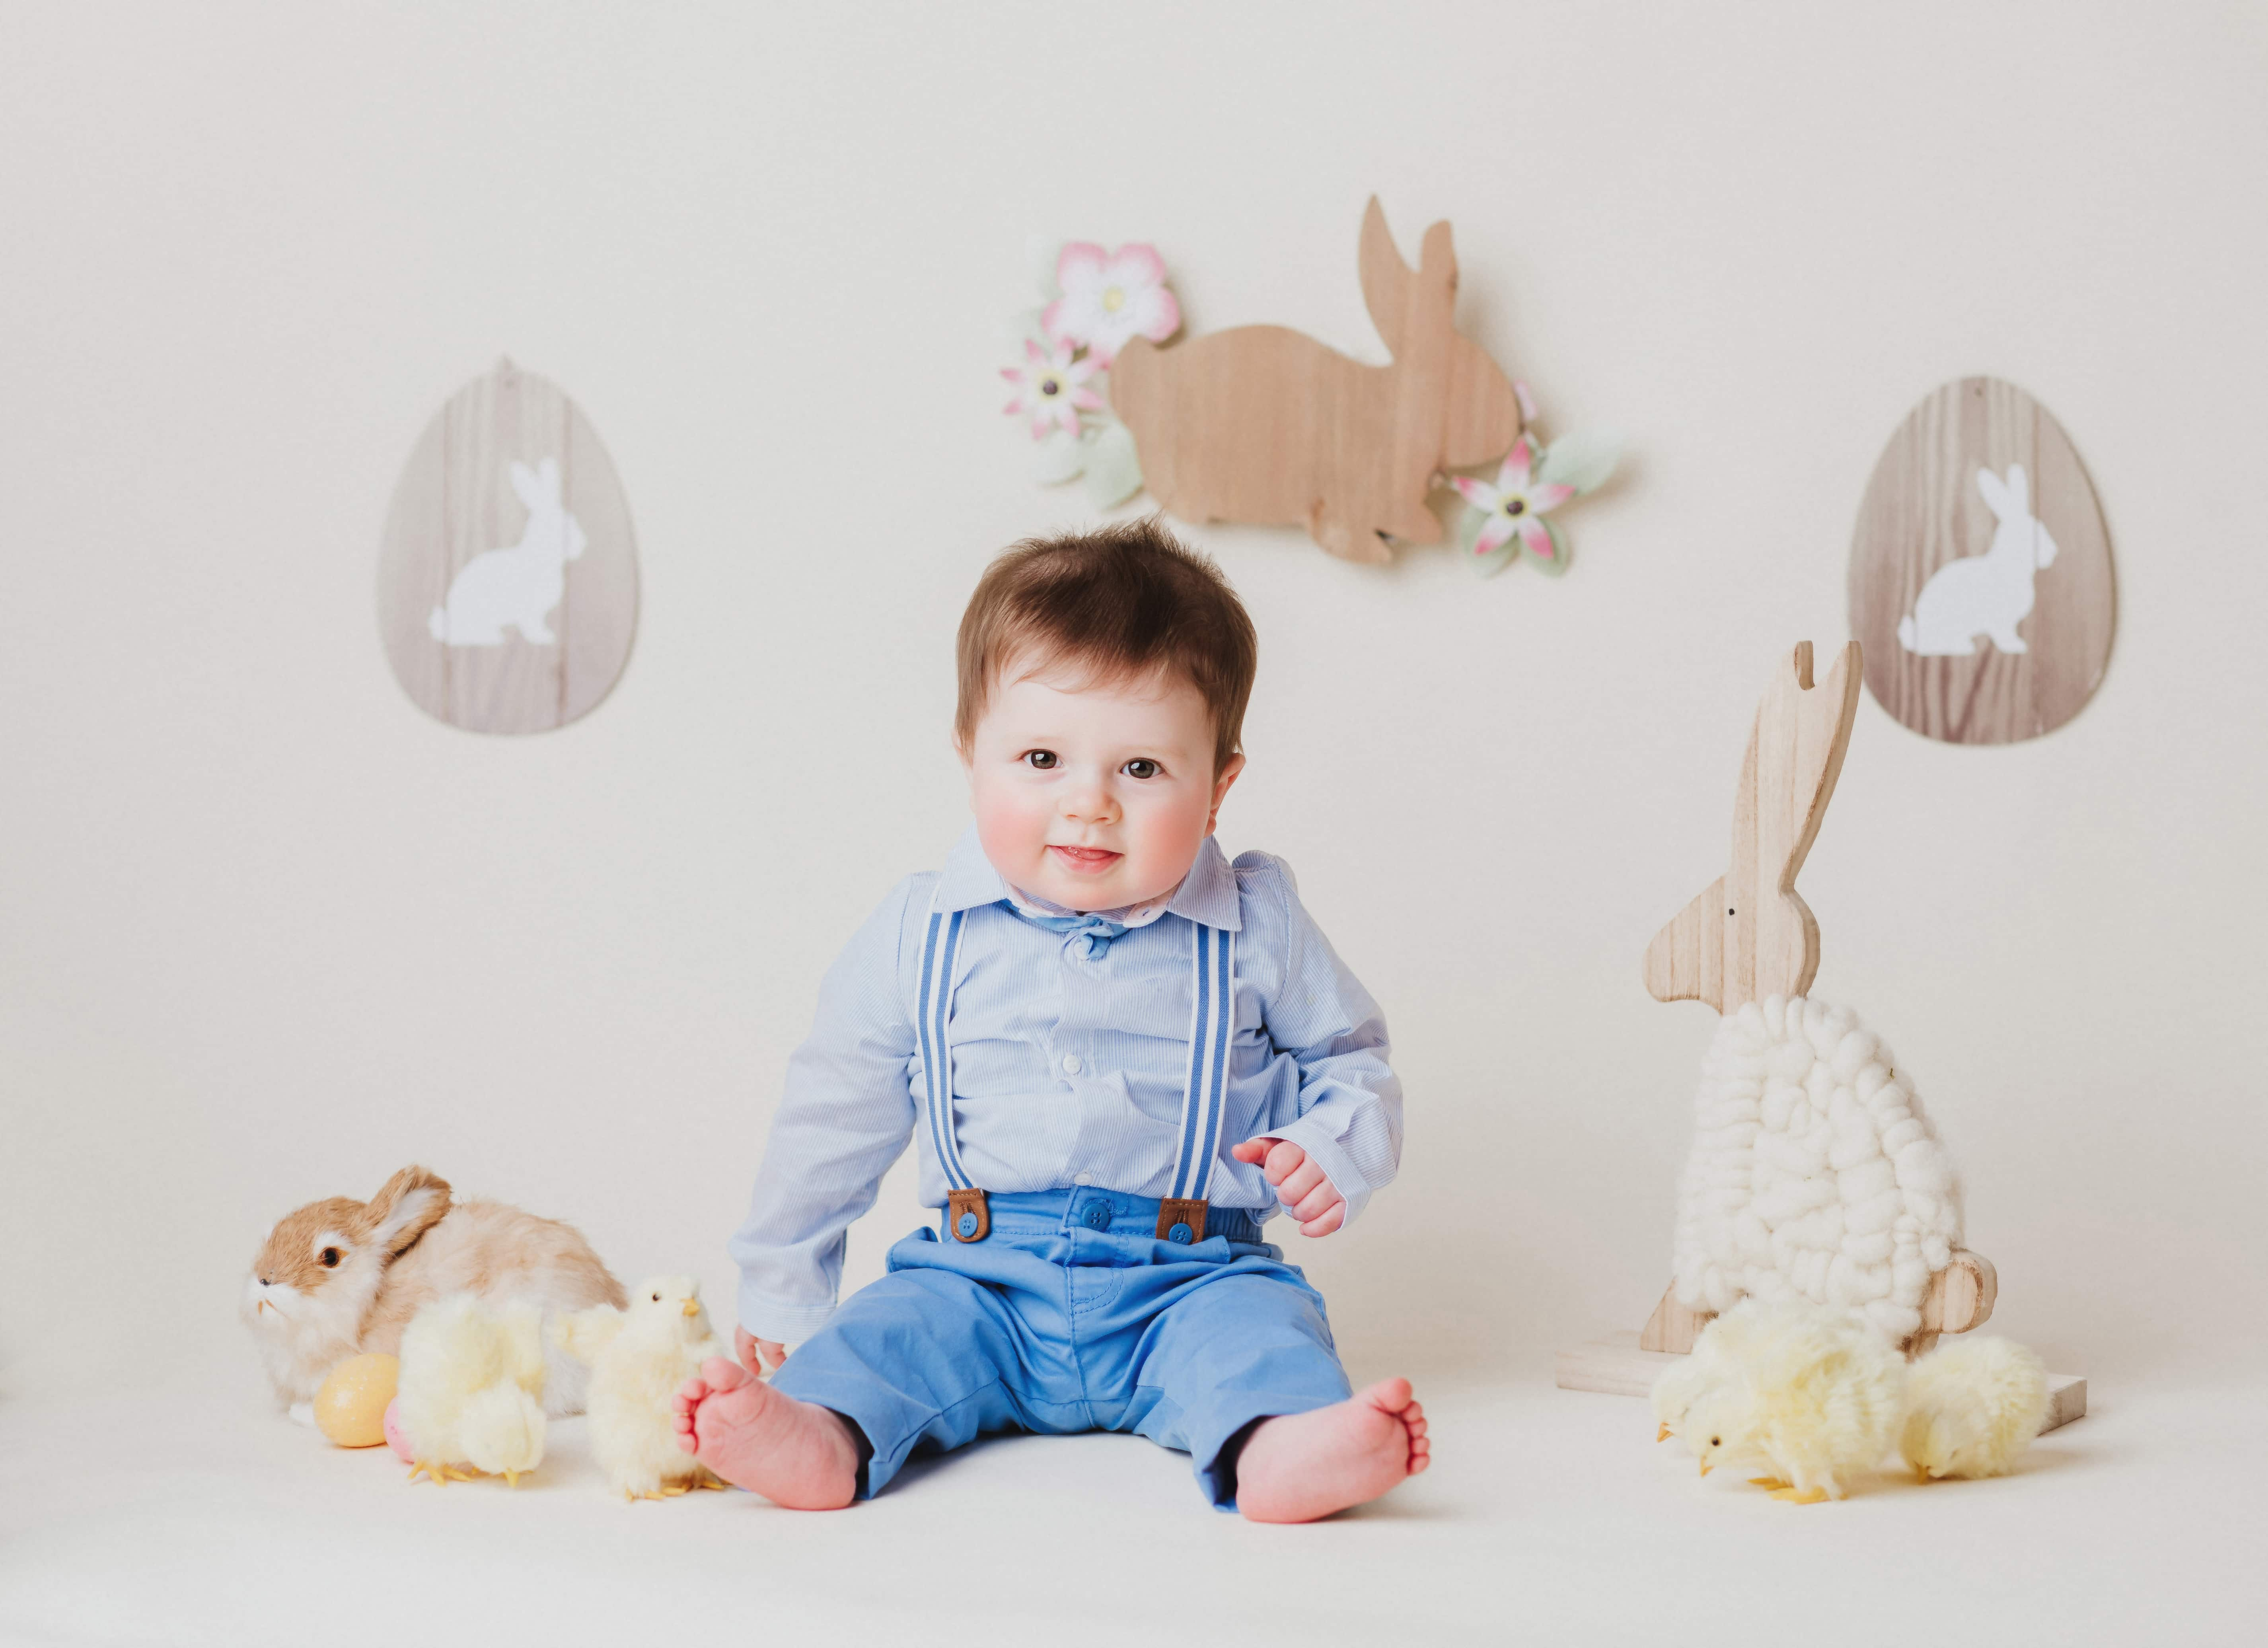 Spring and Easter mini sessions offered by photographers in Rhode Island from Massart Photography who also service RI, CT and MA